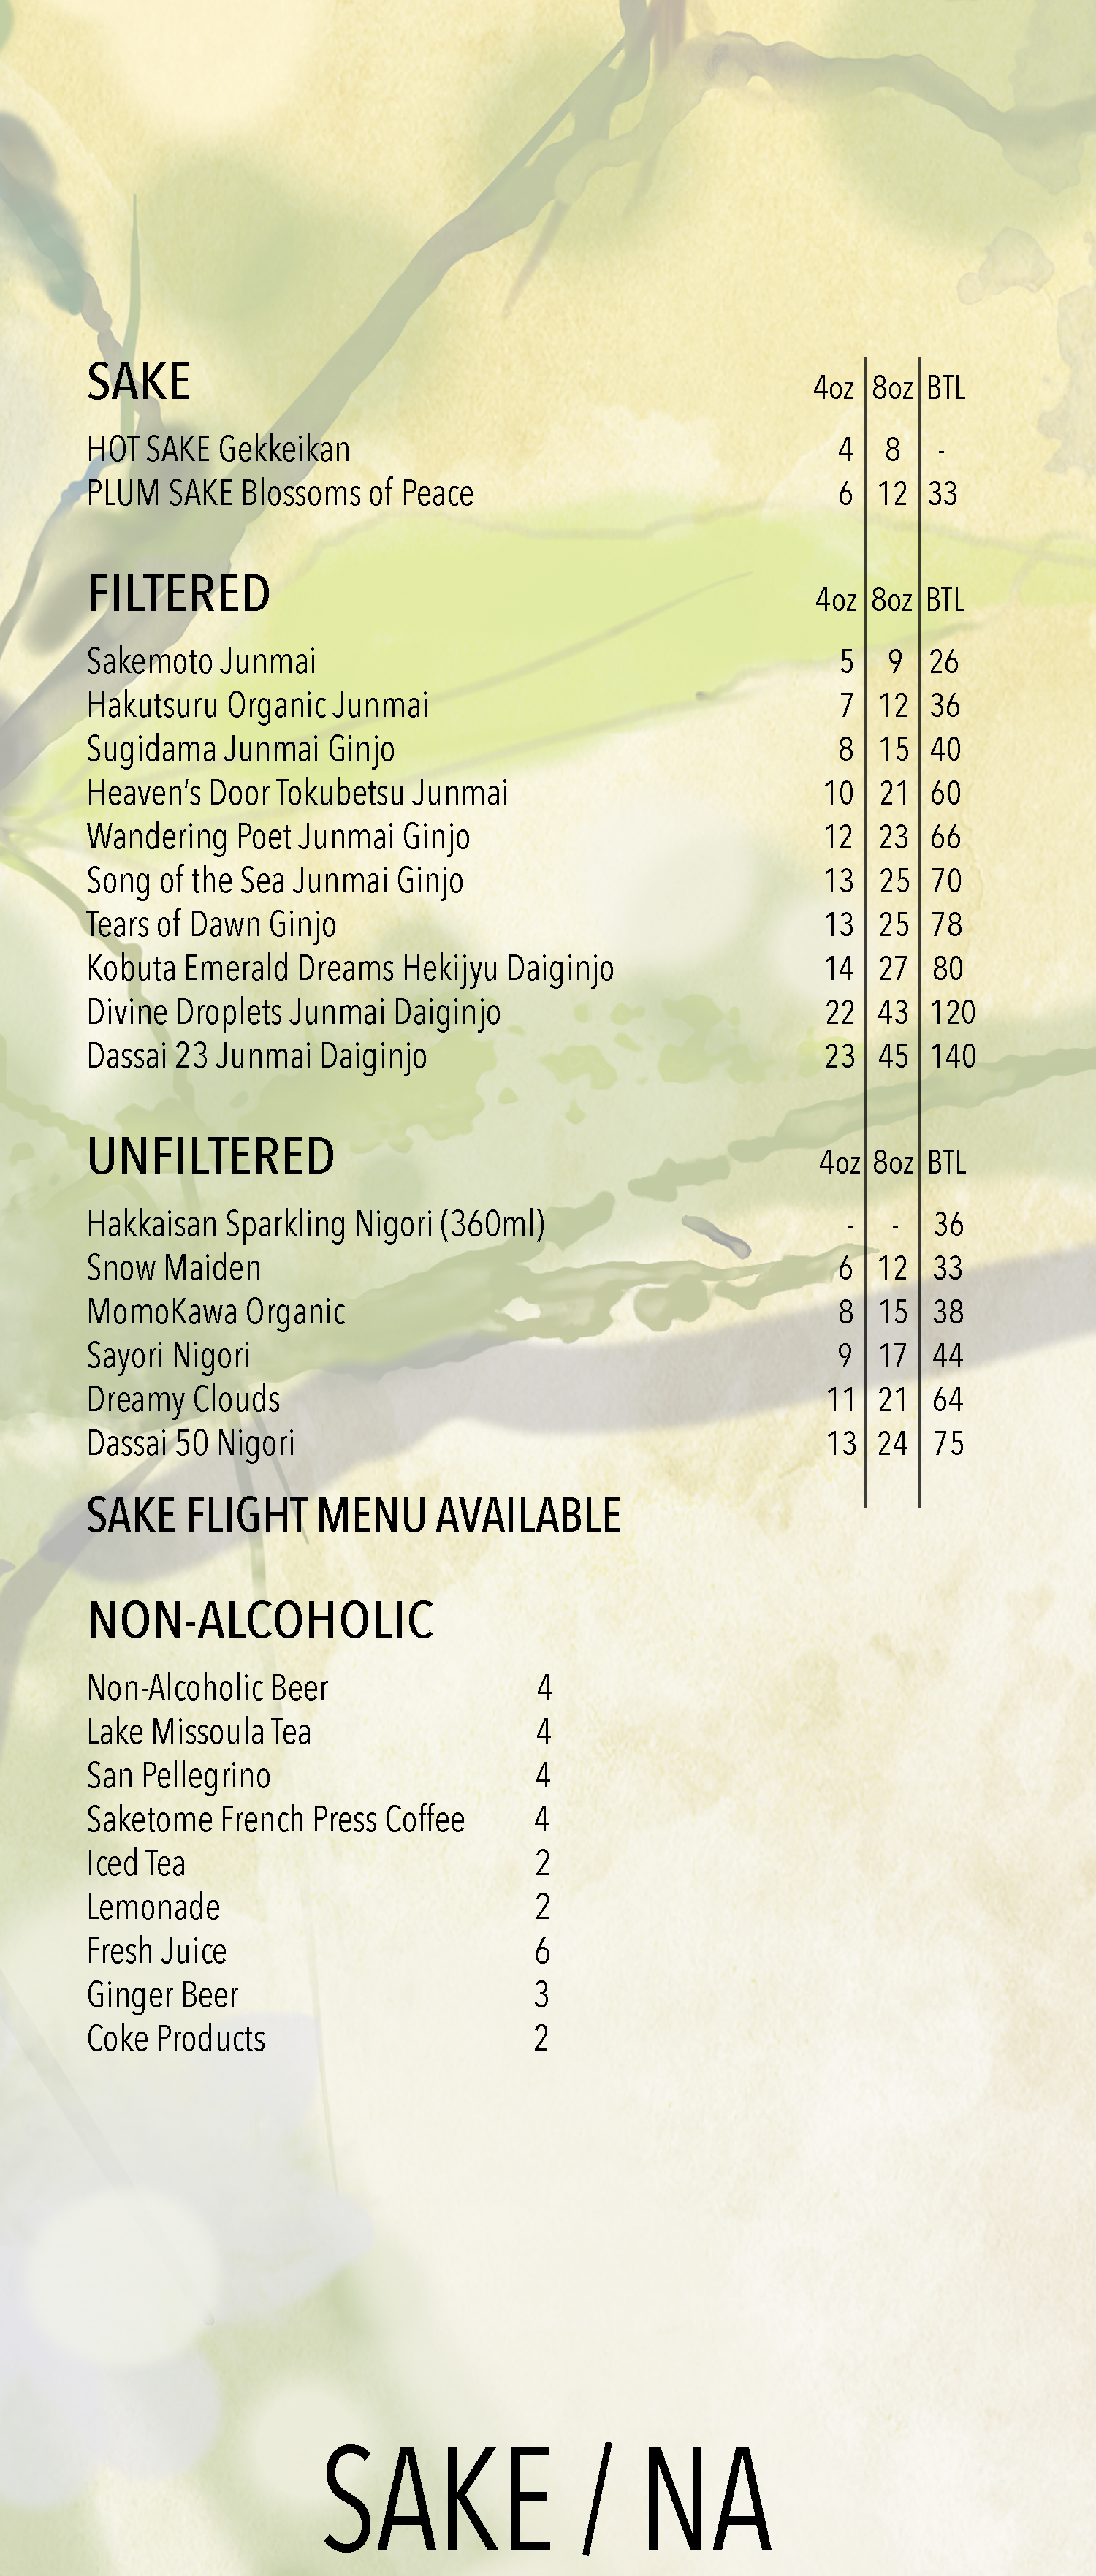 One of the seven-page menu for SakeTome Sushi.